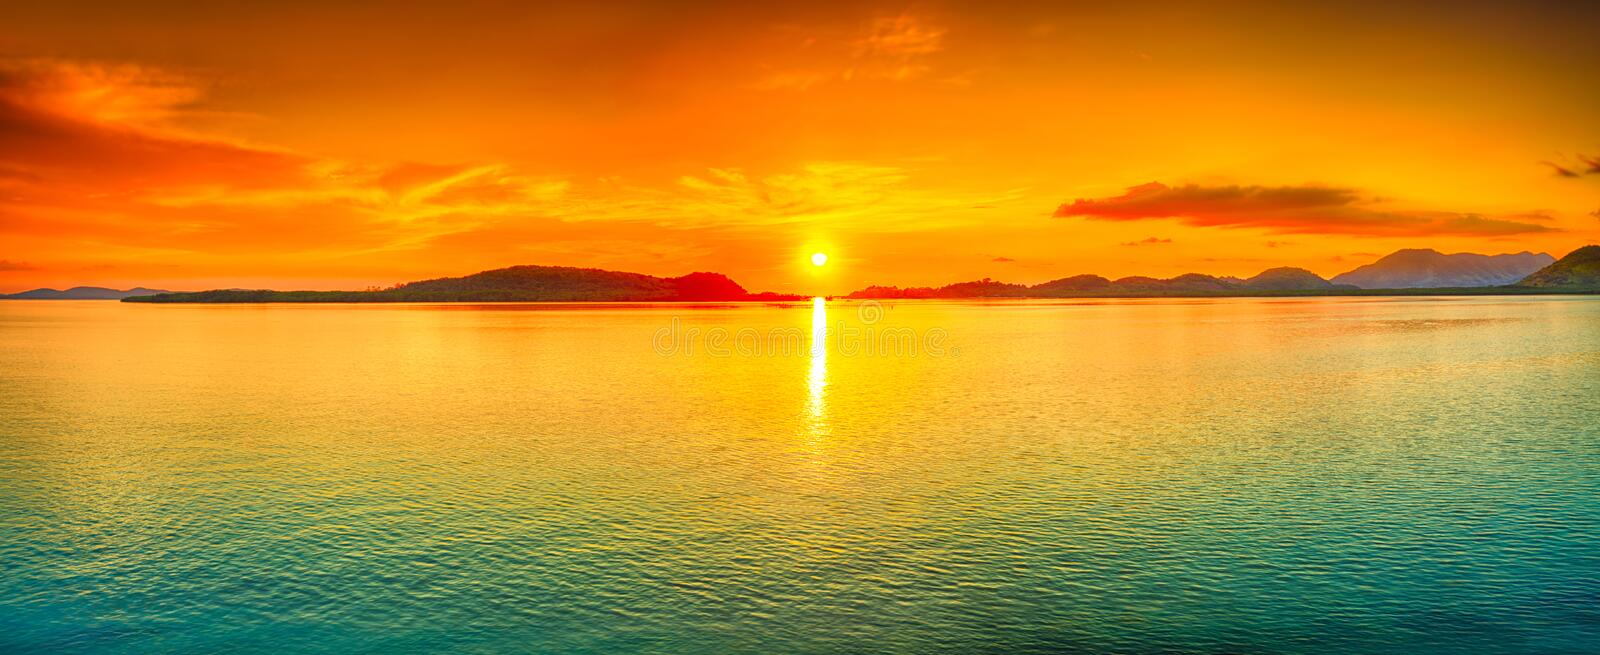 Sunset panorama royalty free stock image